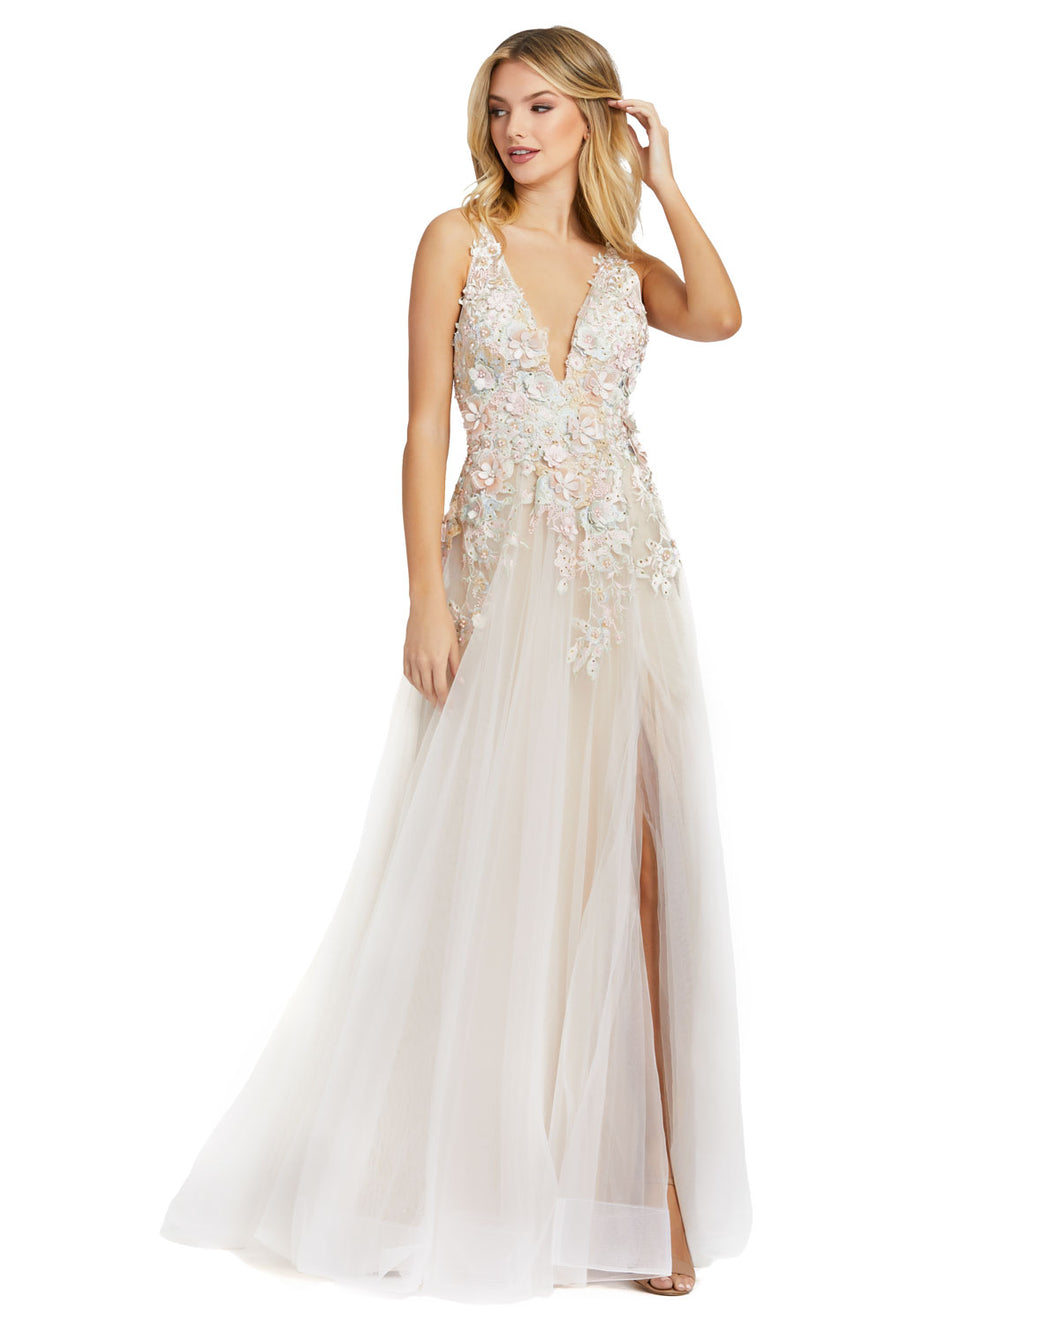 Macduggal 12312 Beautiful Lightweight Embellished Gown